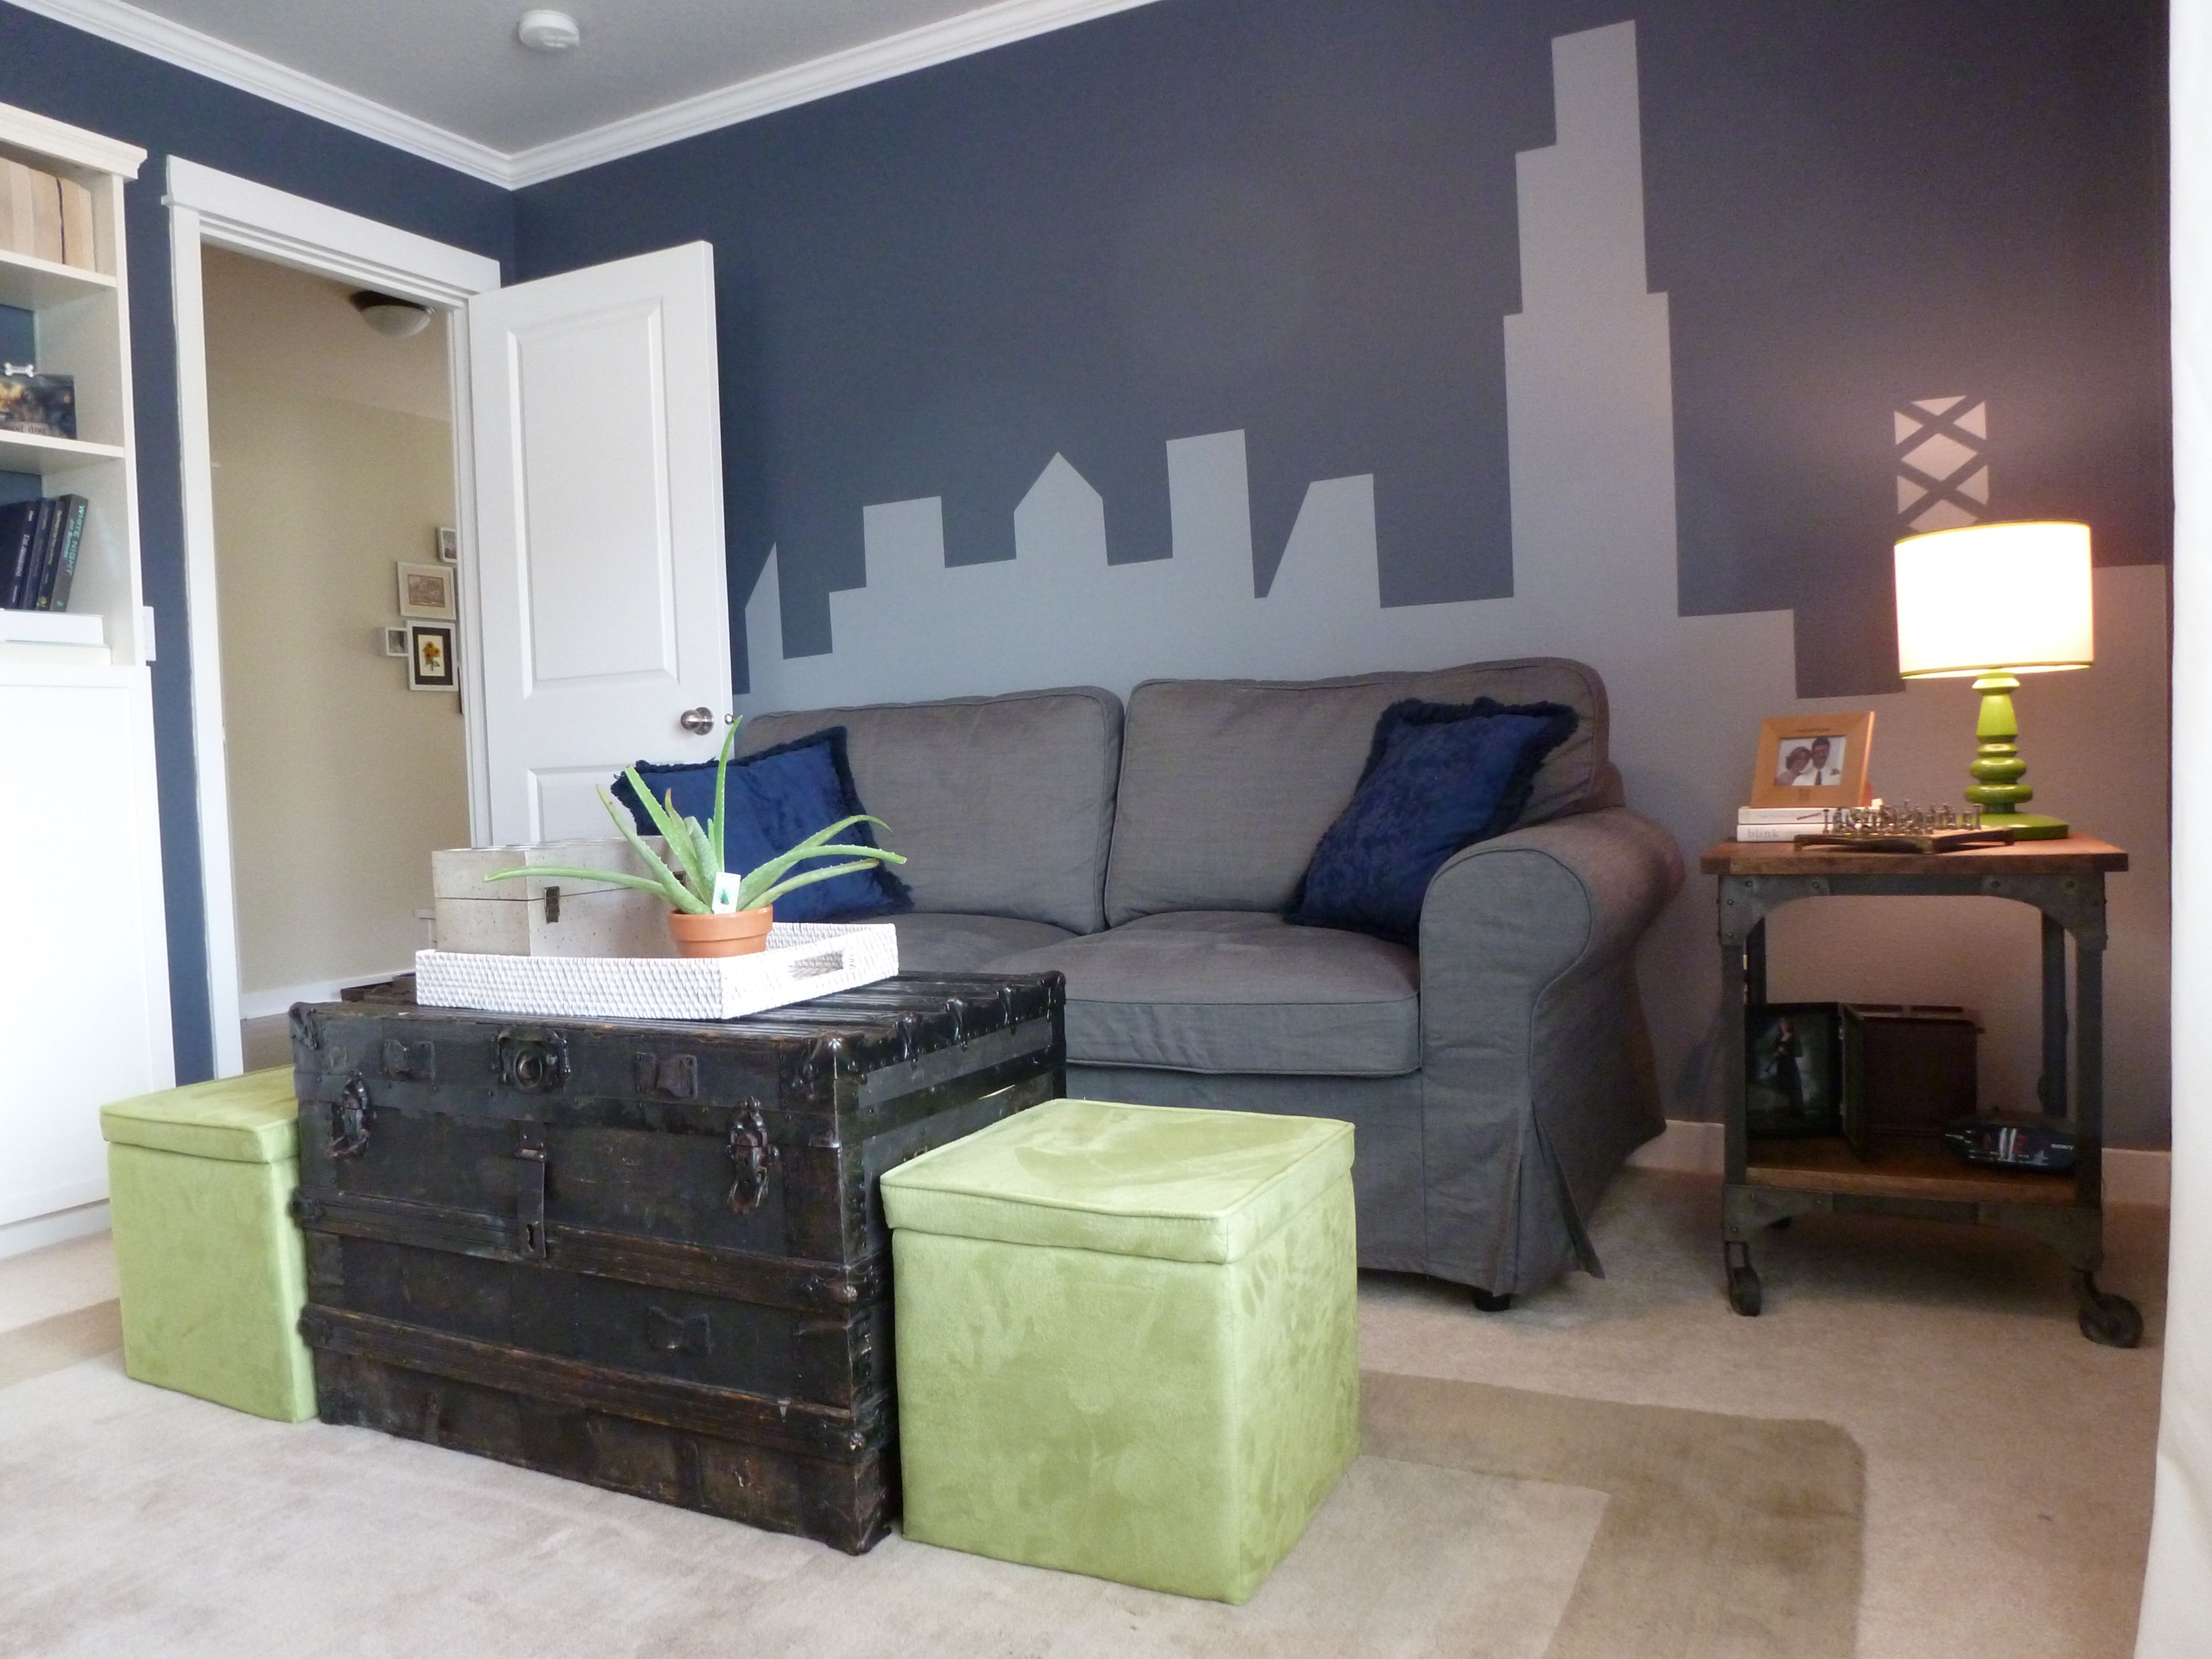 light blue and gray bedroom 17 4320—3240